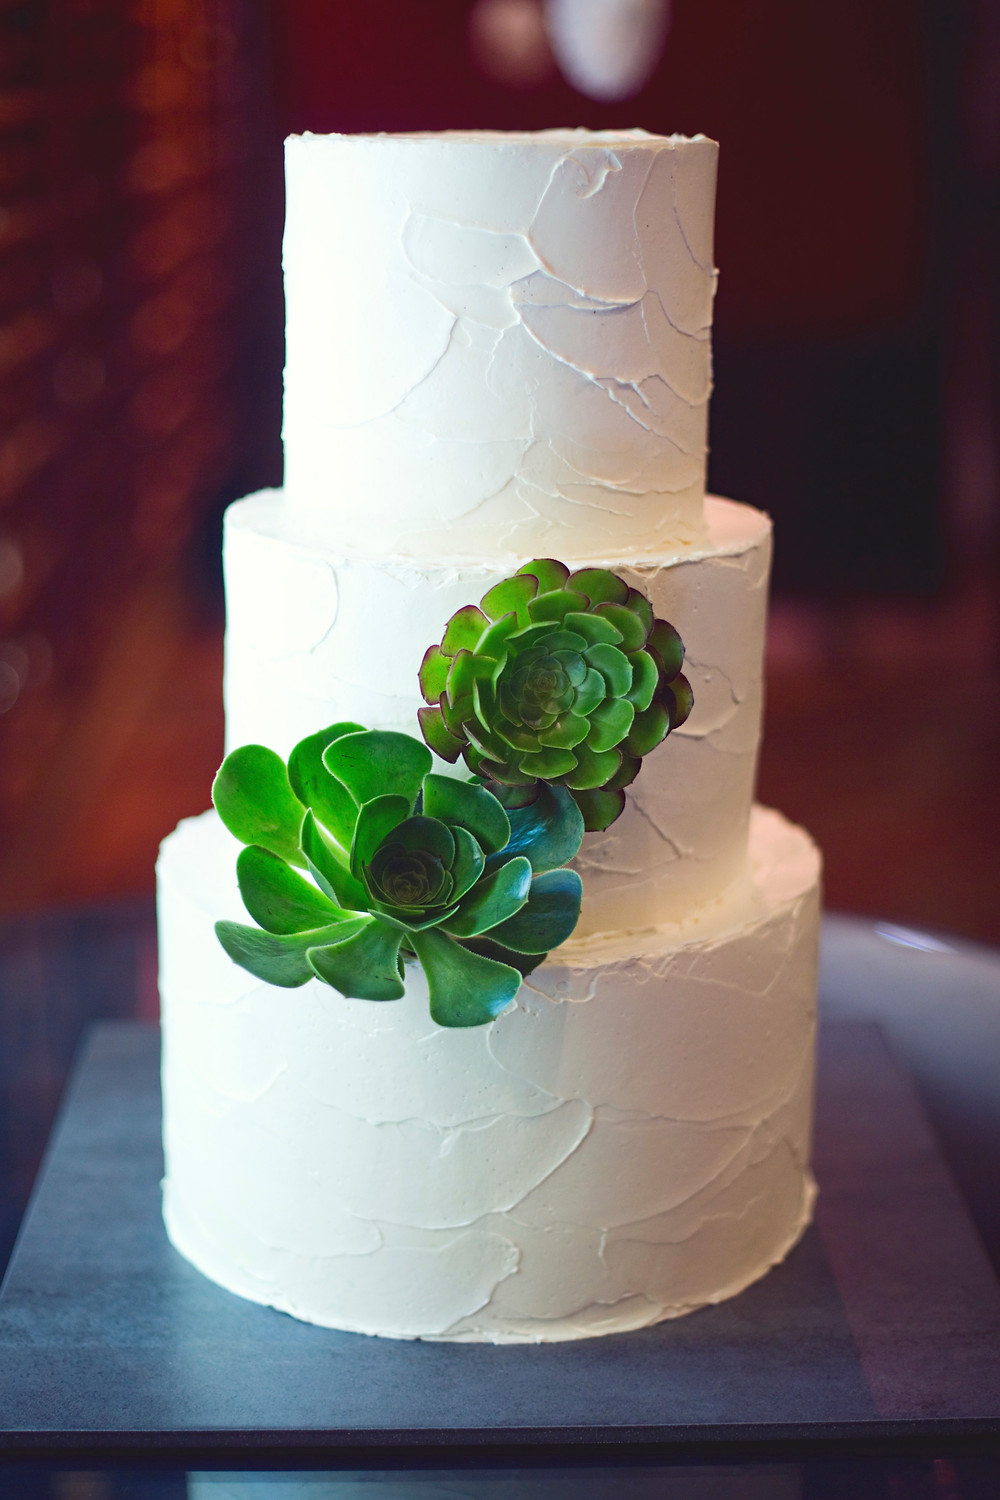 A rustic buttercream white wedding cake decorated with succulents on a wedding day.